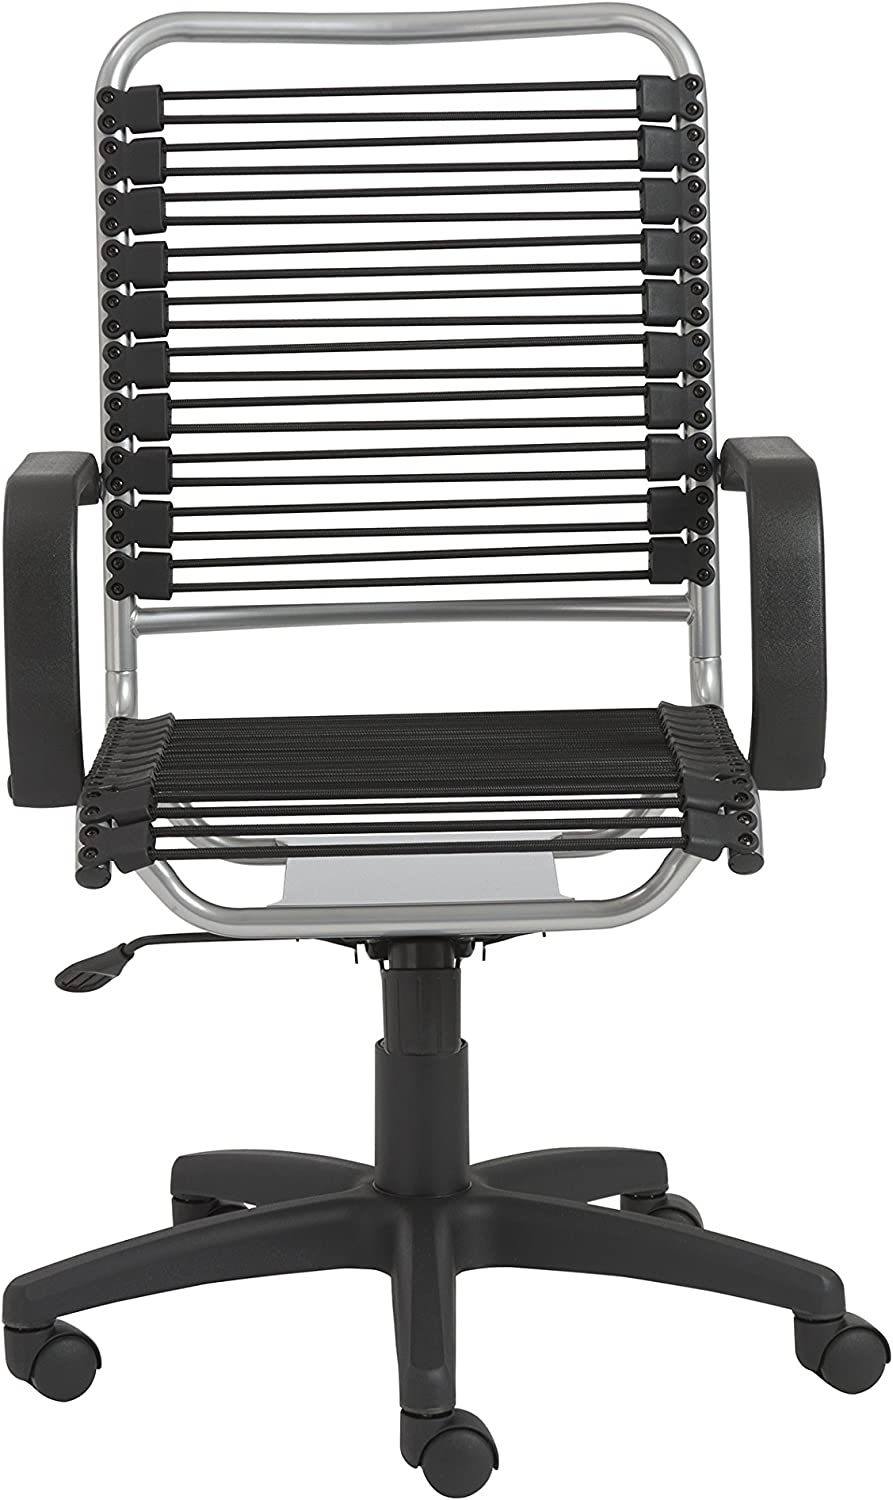 Eurø Style 02549 Bradley Bungie Office Chair, L: 27 W: 23 H: 37.5-43 SH: 17.5-23, Black/Aluminum